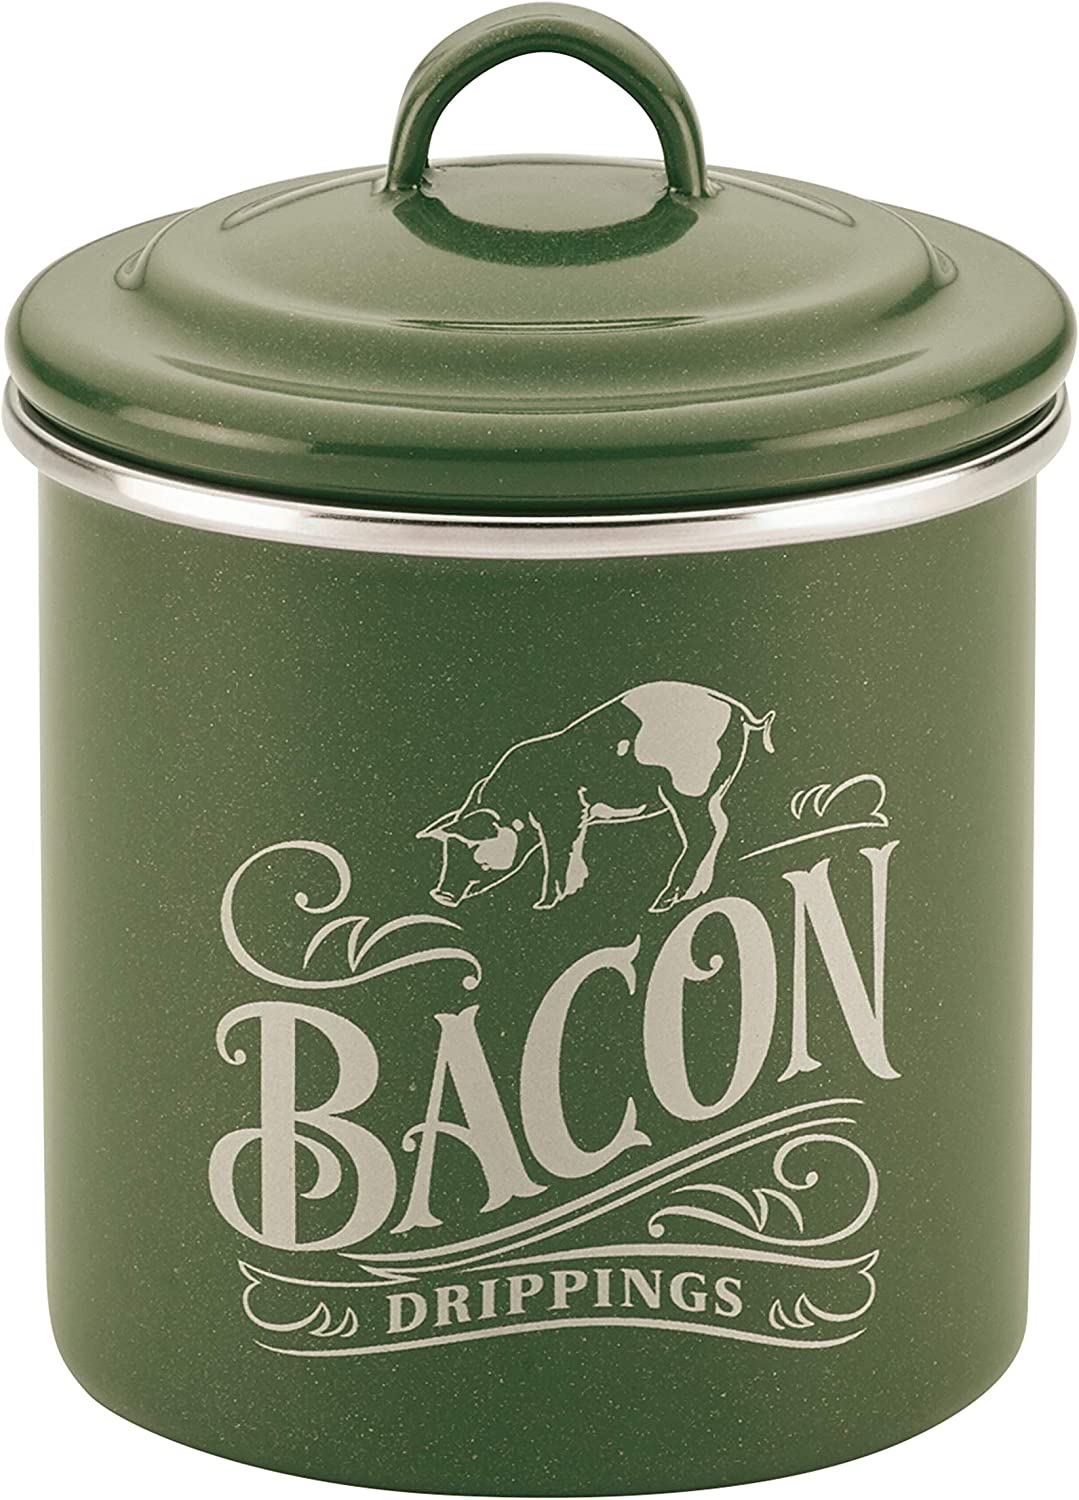 Ayesha Curry 47989 Enamel on Steel Bacon Grease Can / Bacon Grease Container - 4 Inch, Green